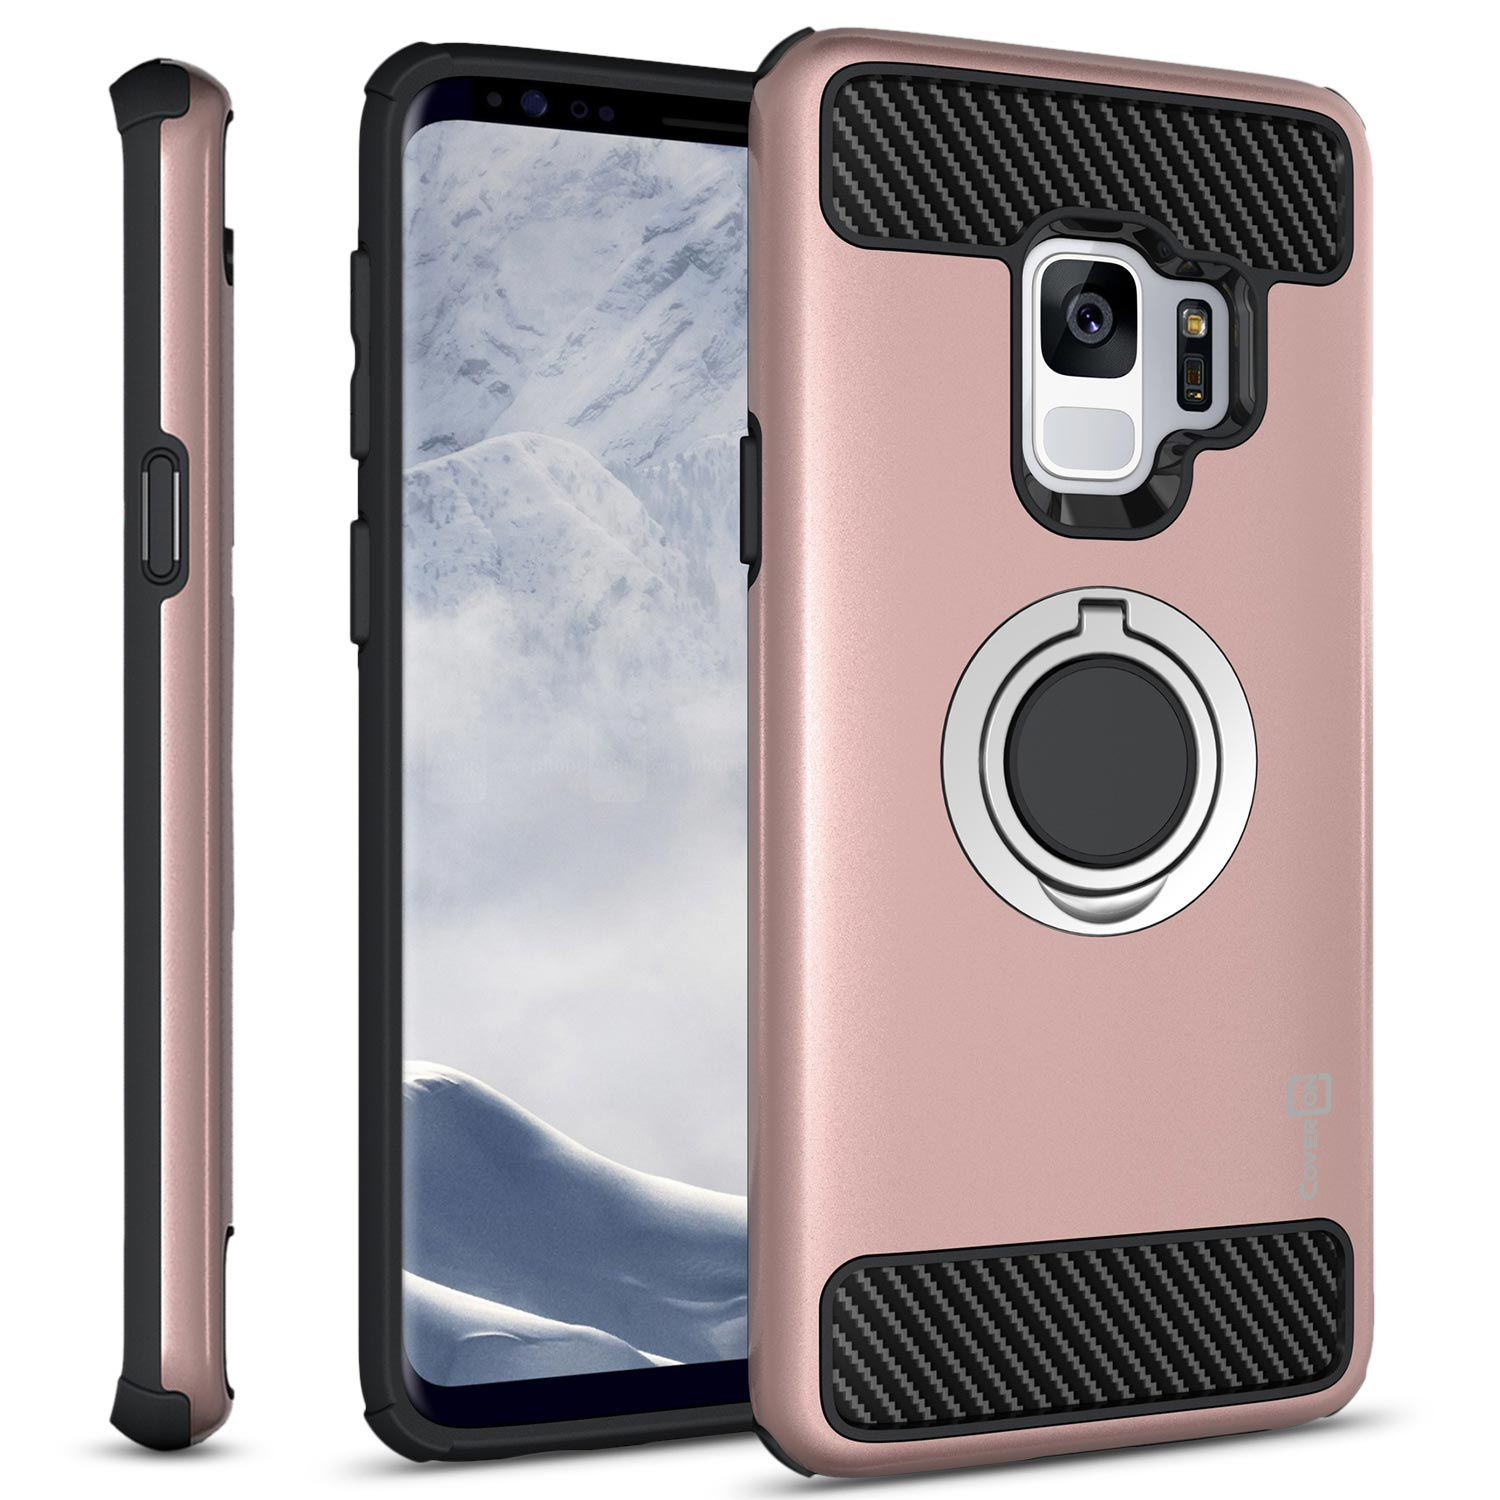 CoverON Samsung Galaxy S9 Case with Ring Holder, RingCase Series Hybrid Protective Dua Layer Phone Cover